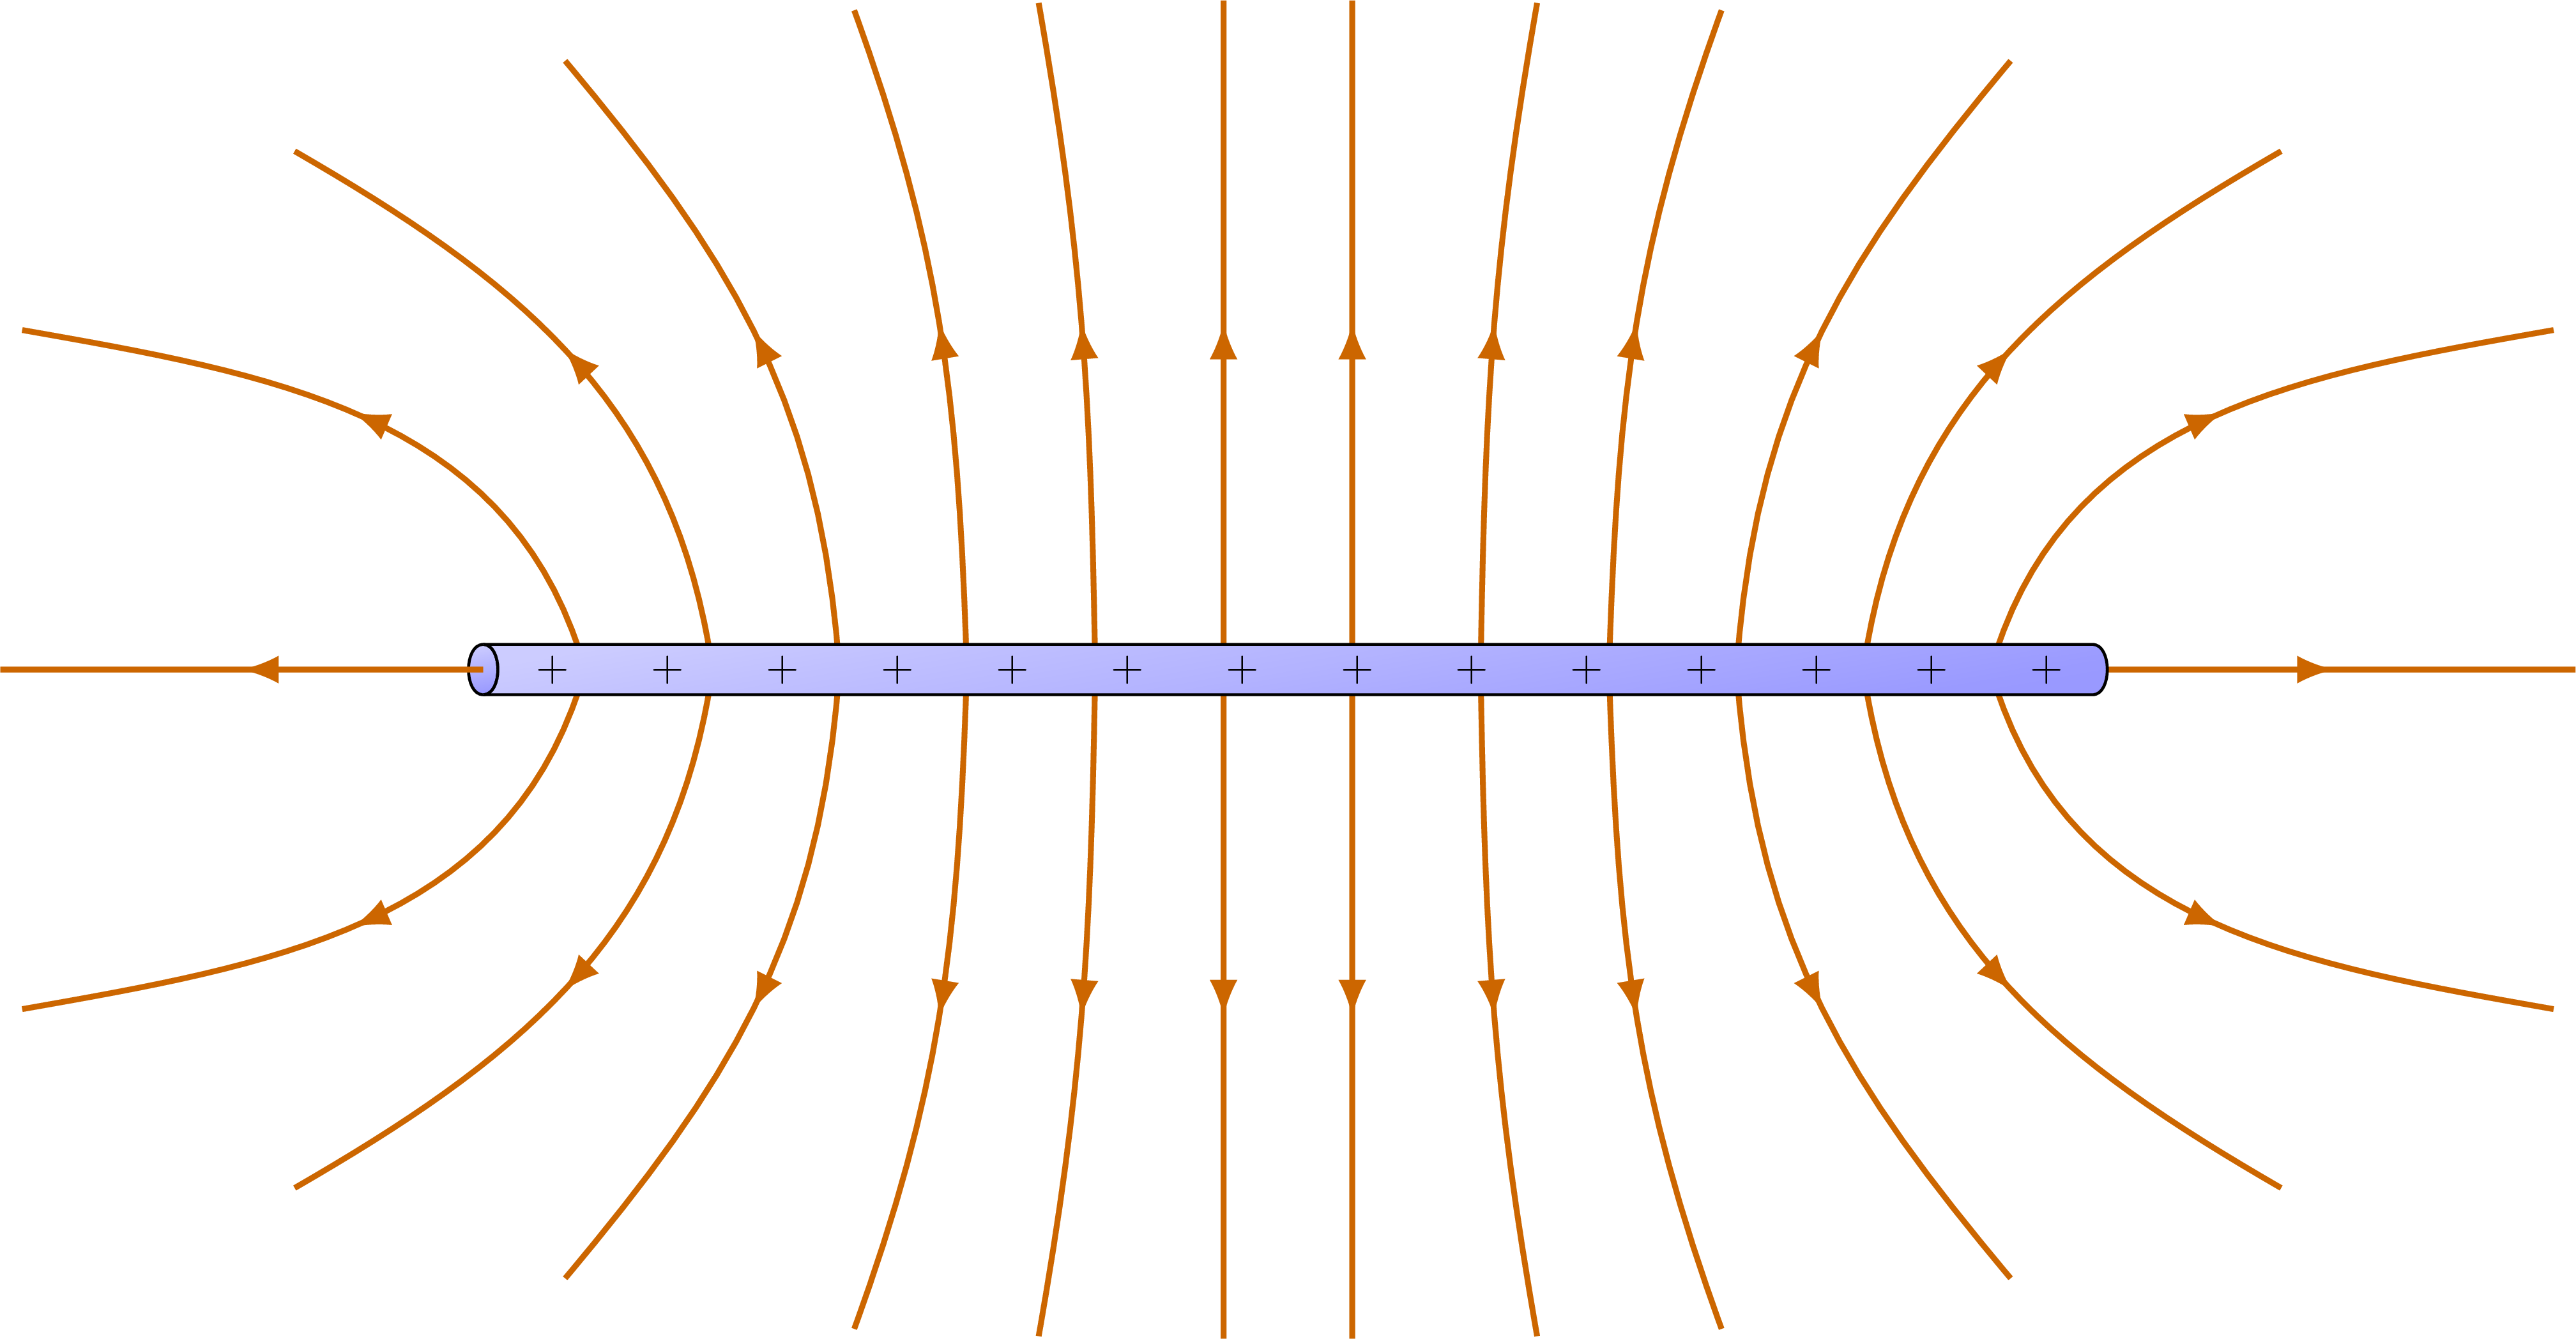 electric_field_rod-006.png